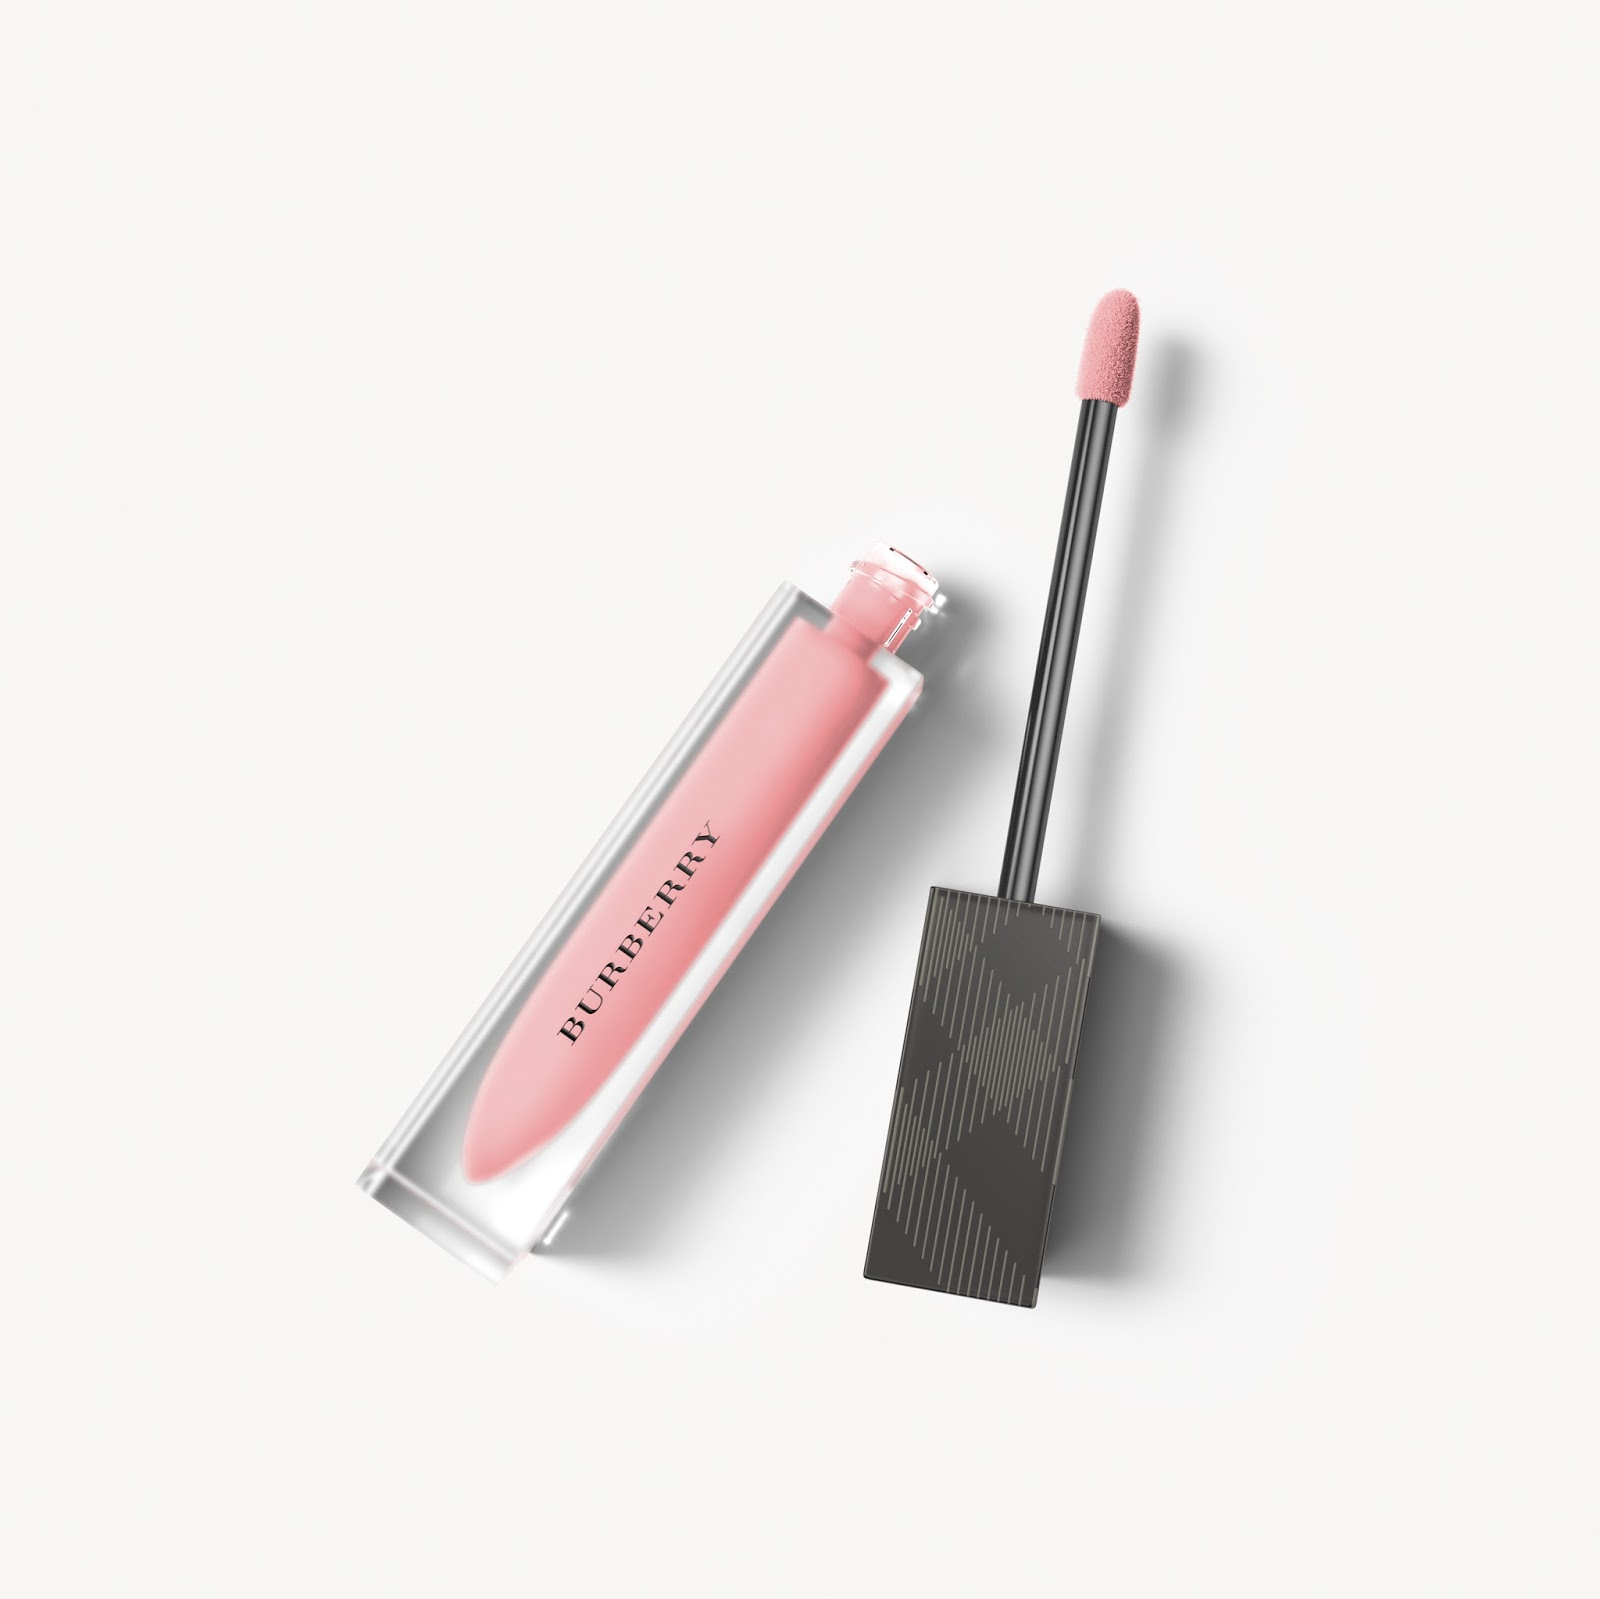 Burberry Liquid Lip Velvet iris law fawn rose no 09